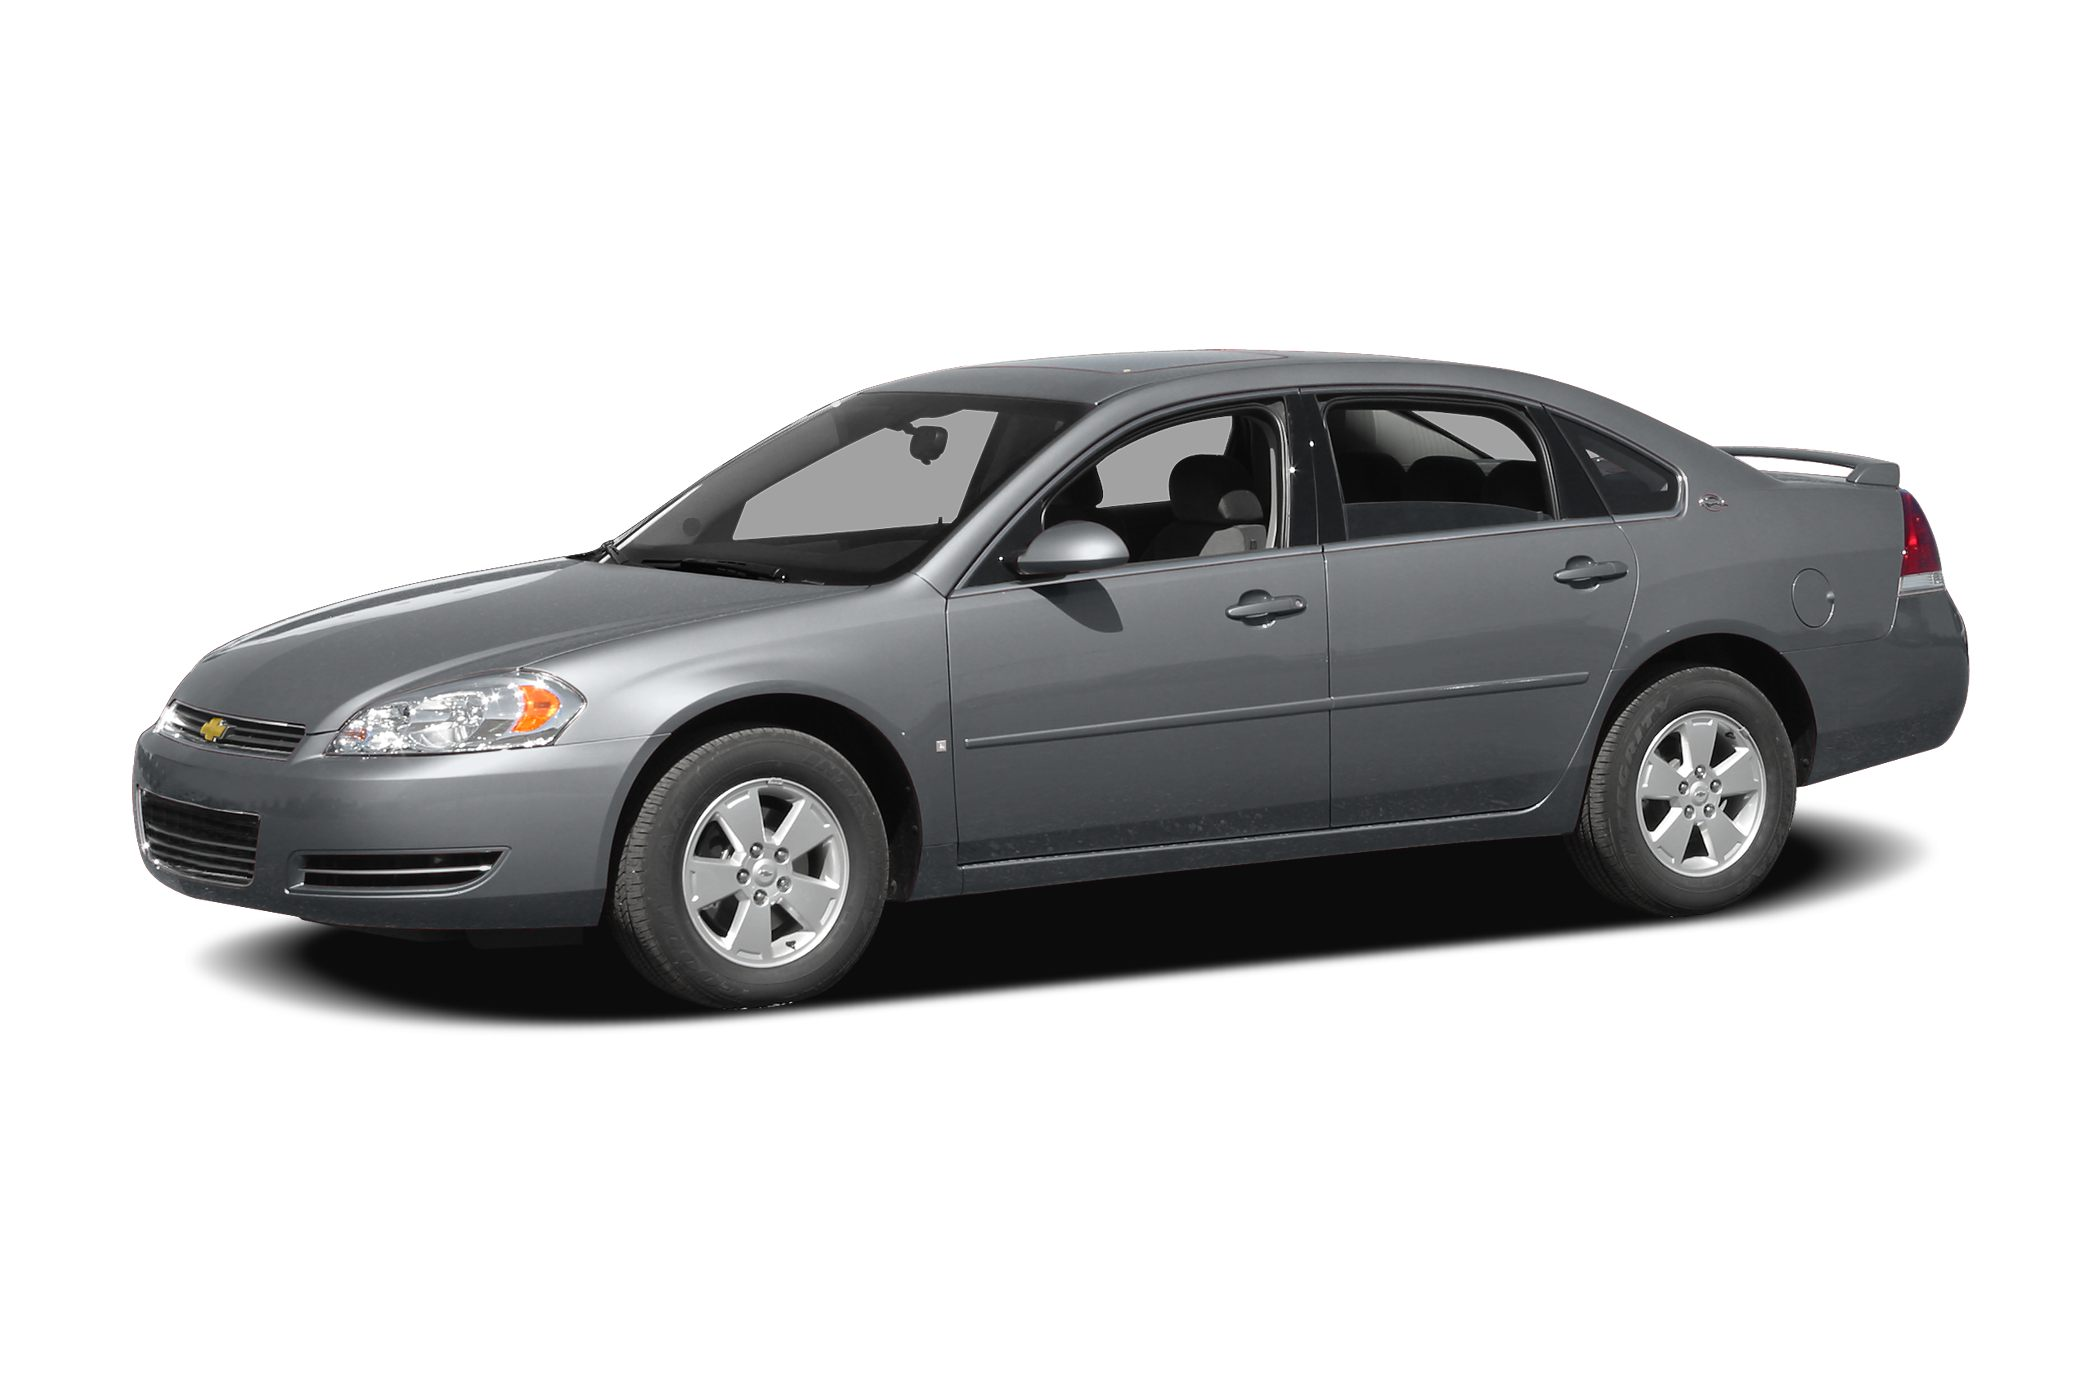 2008 Chevrolet Impala LT Come see this 2008 Chevrolet Impala LT Its Automatic transmission and Ga